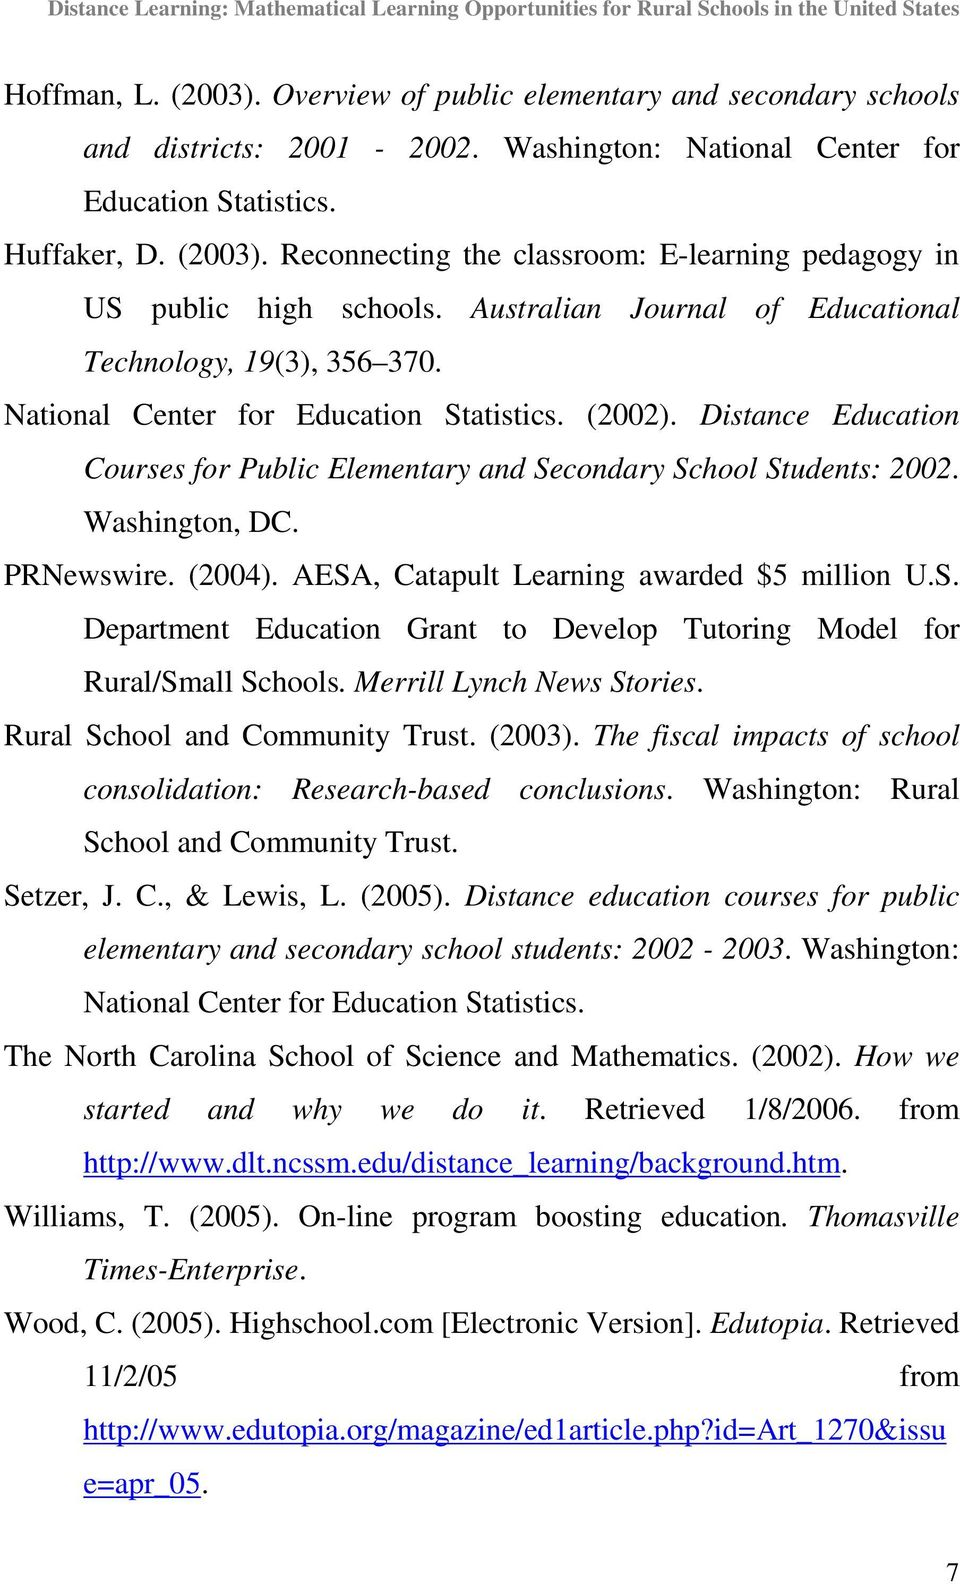 Washington, DC. PRNewswire. (2004). AESA, Catapult Learning awarded $5 million U.S. Department Education Grant to Develop Tutoring Model for Rural/Small Schools. Merrill Lynch News Stories.